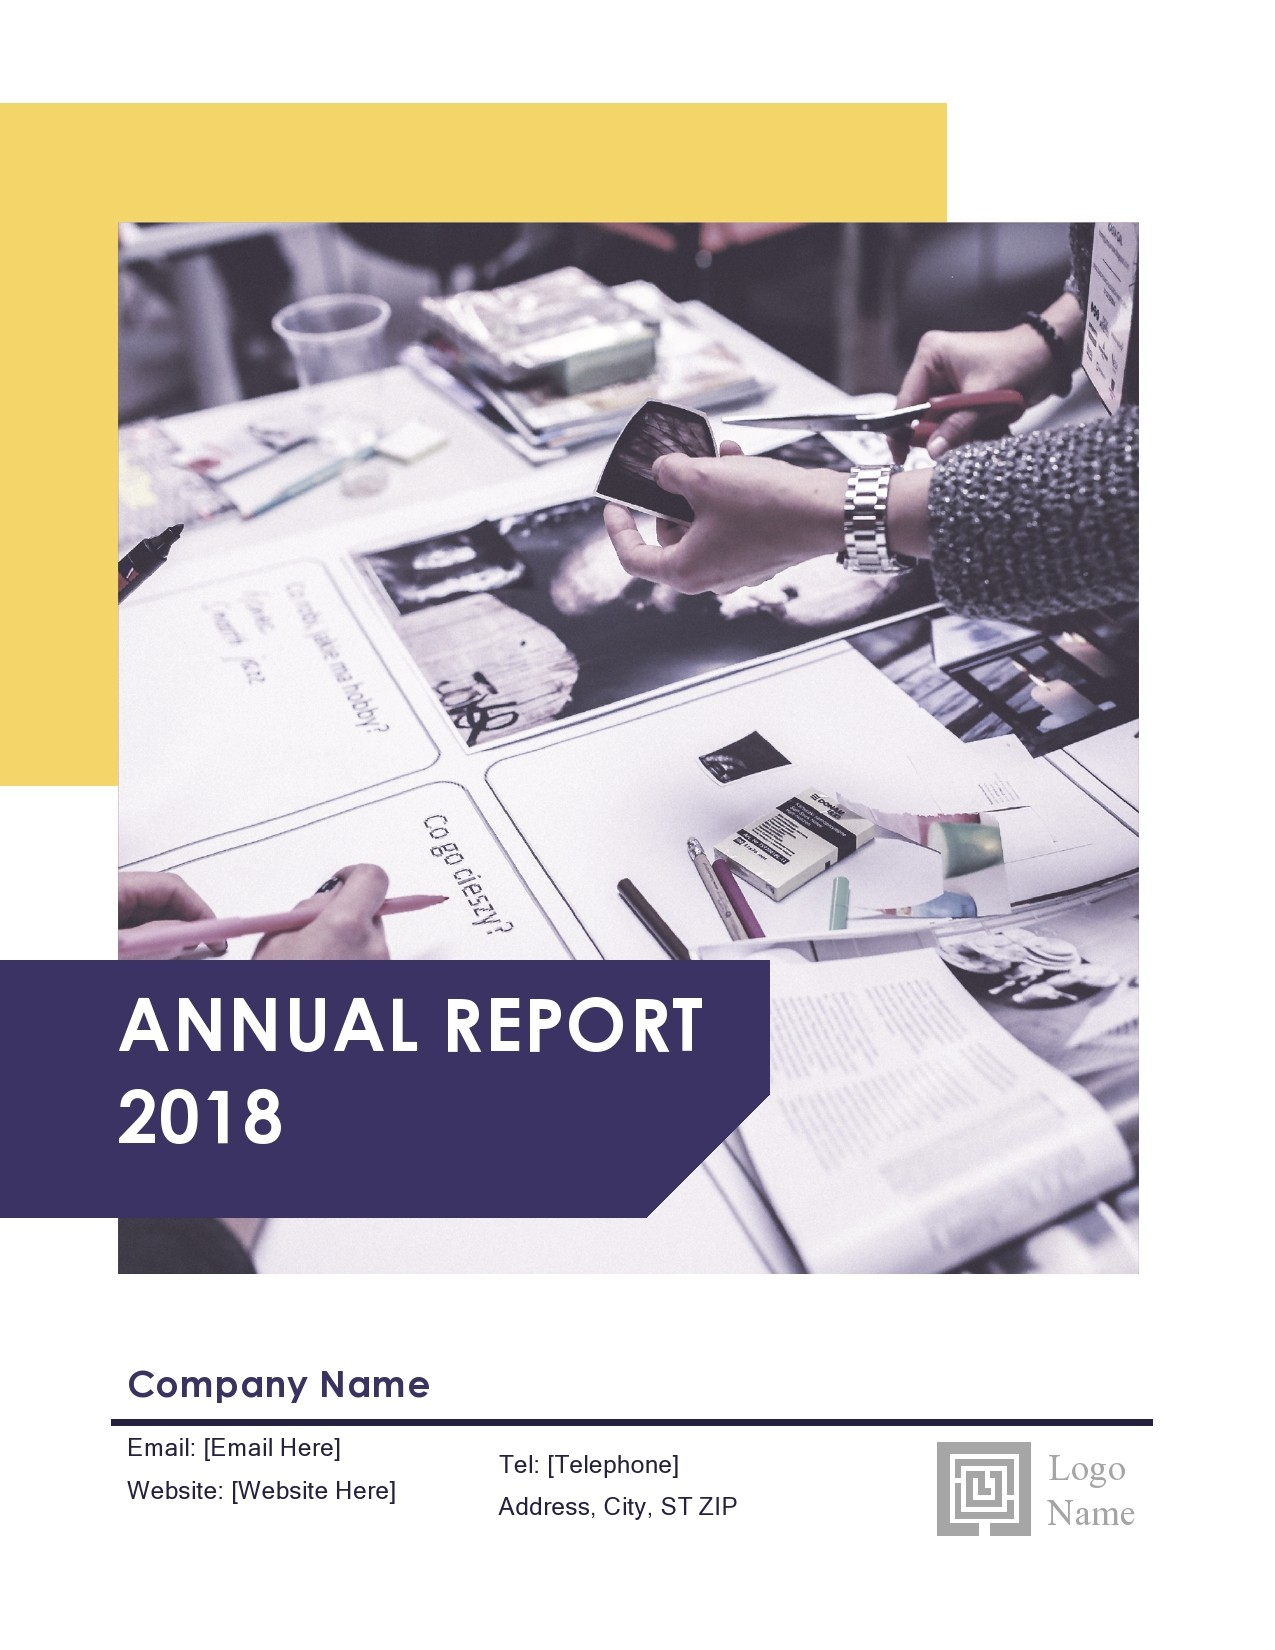 Free annual report template 01